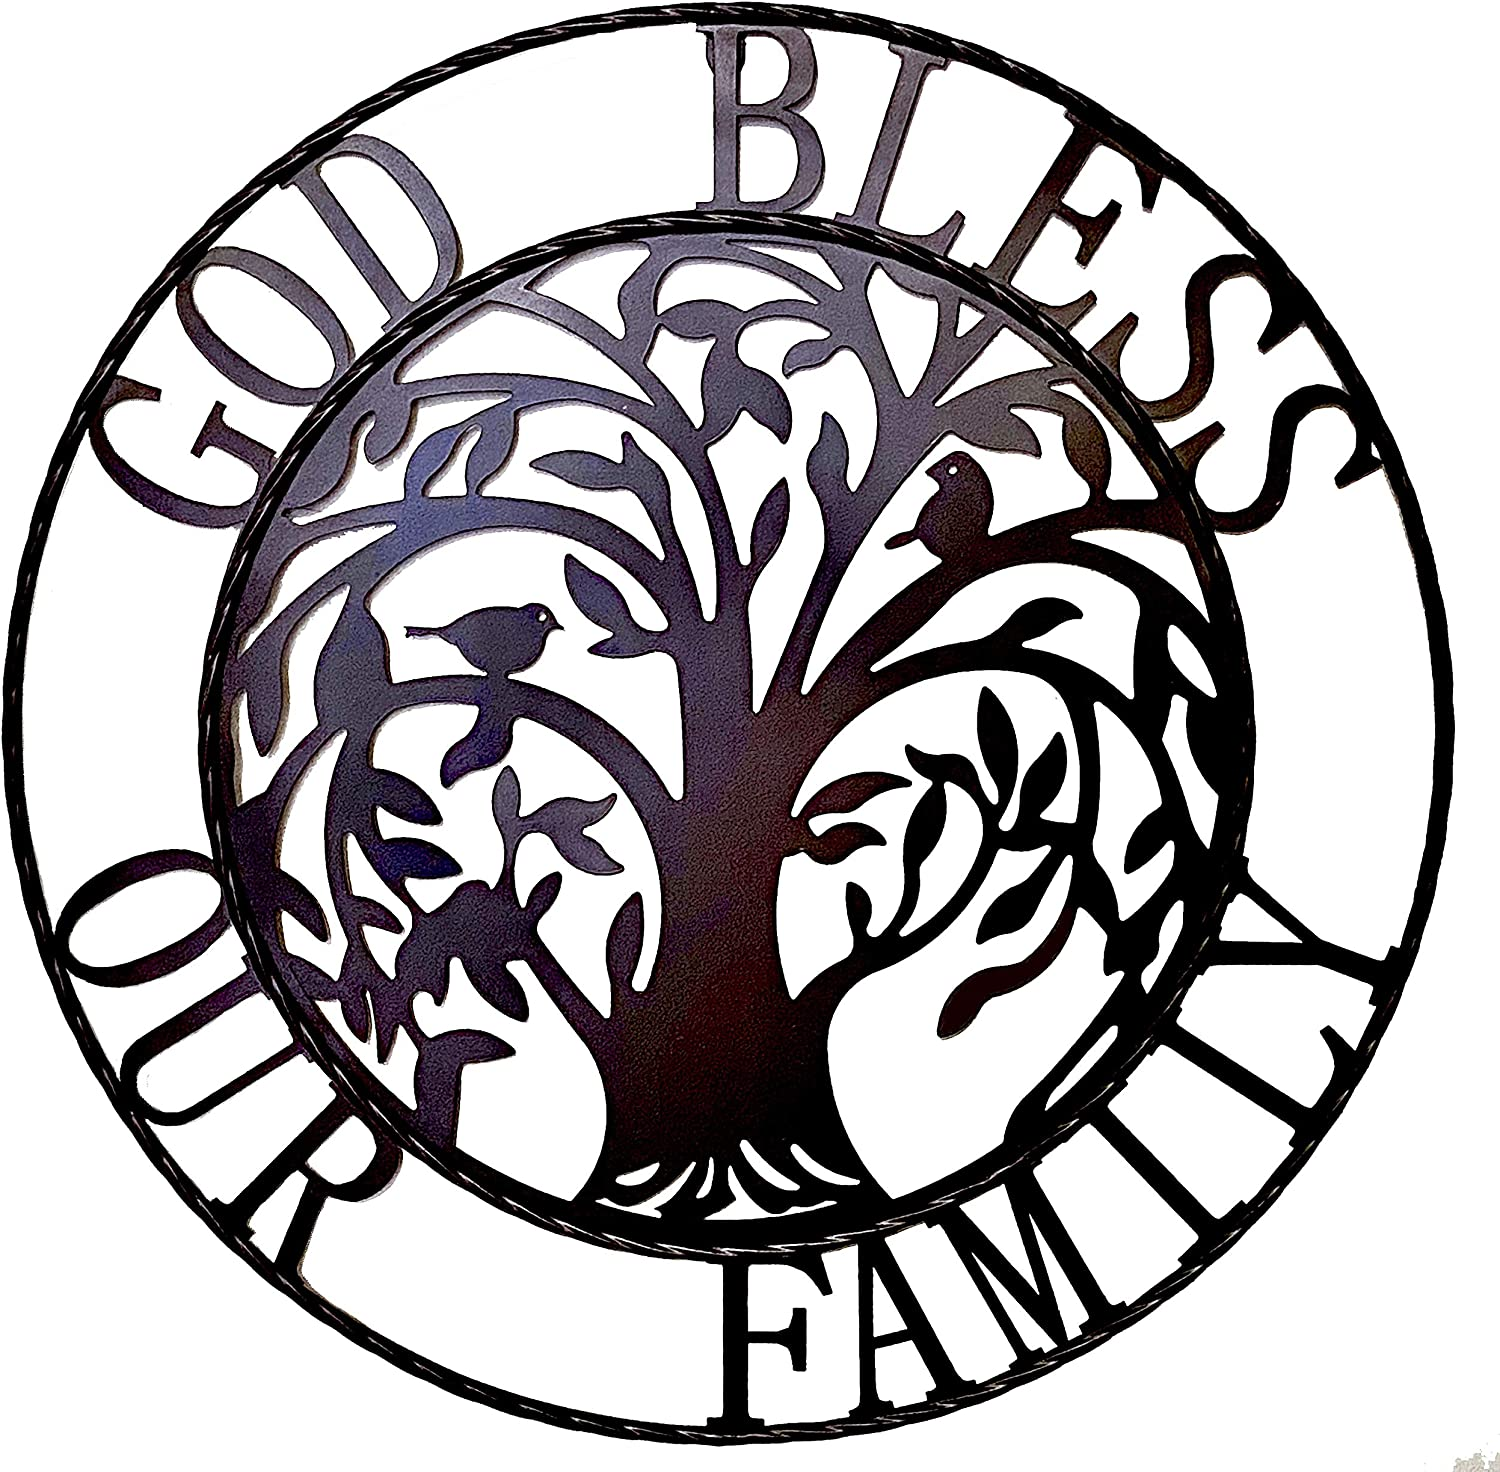 "Tree of life Rustic Metal Wall Art - God bless our family 24"" Metal Circle Wall Decor Hanging Sign Home Decoration Wall Plaque"